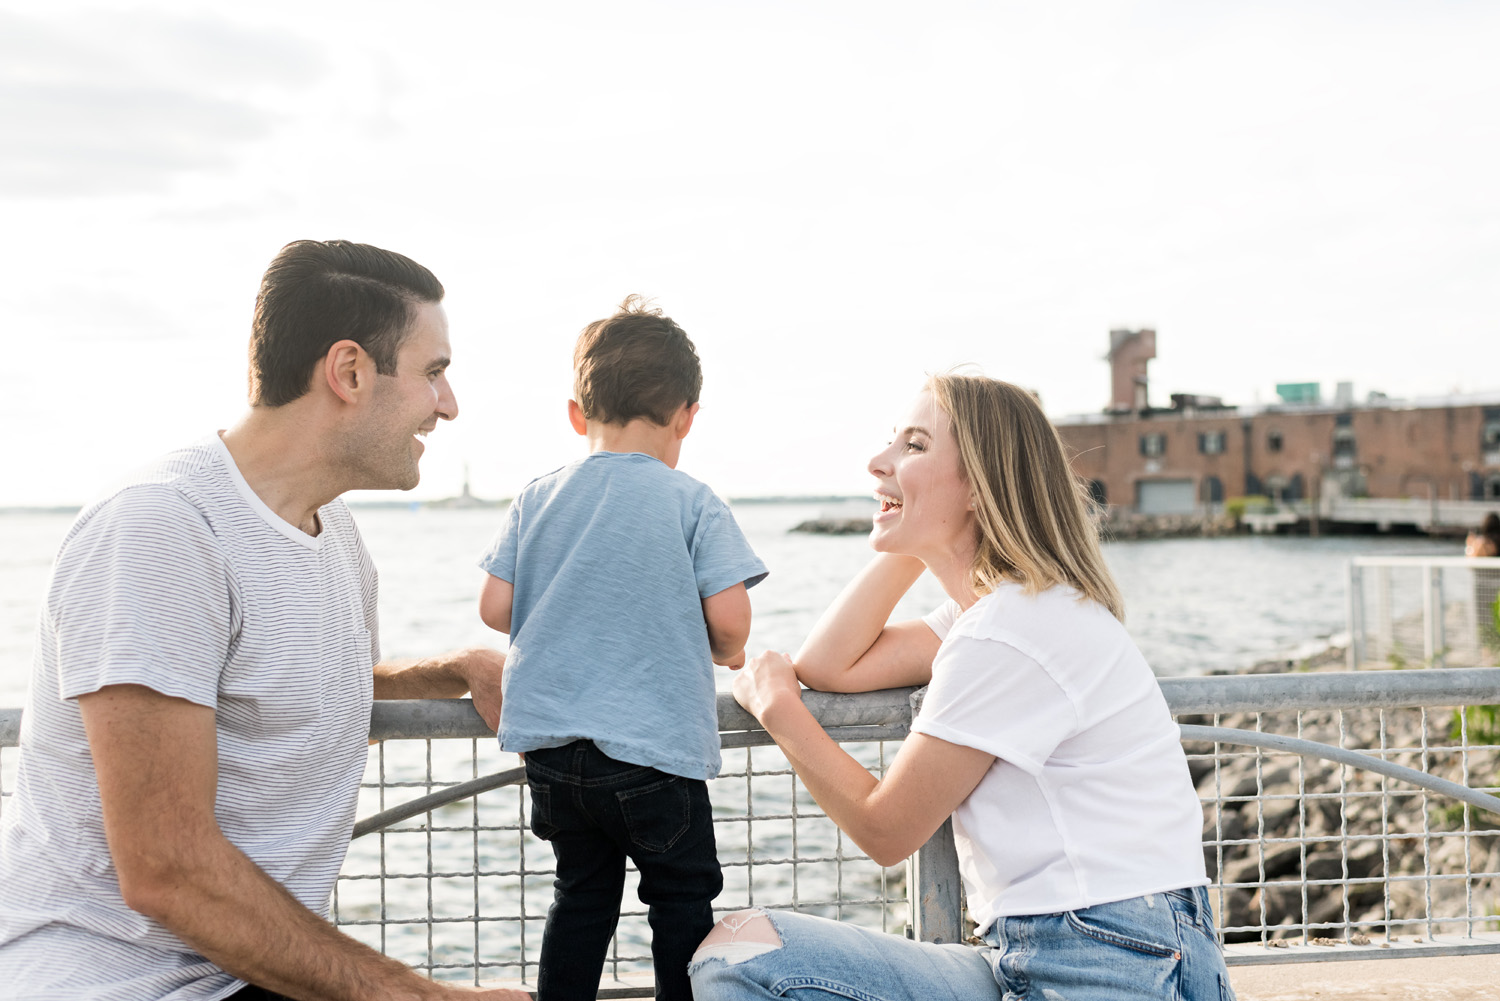 Red Hook Brooklyn Family Photographer_20190811_075.jpg